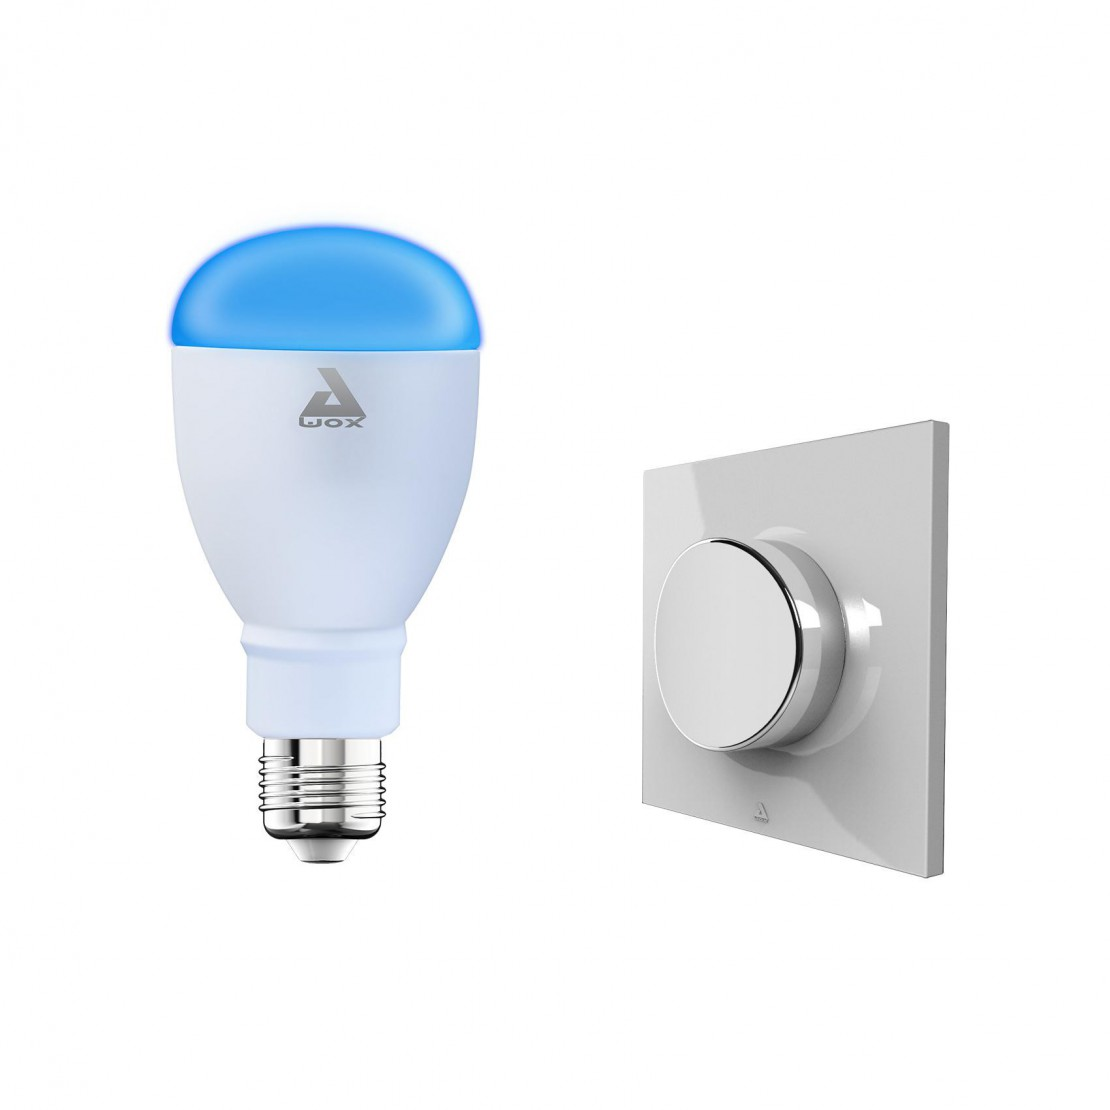 Set ampoule LED E27 couleur Bluetooth et interrupteur sans fil